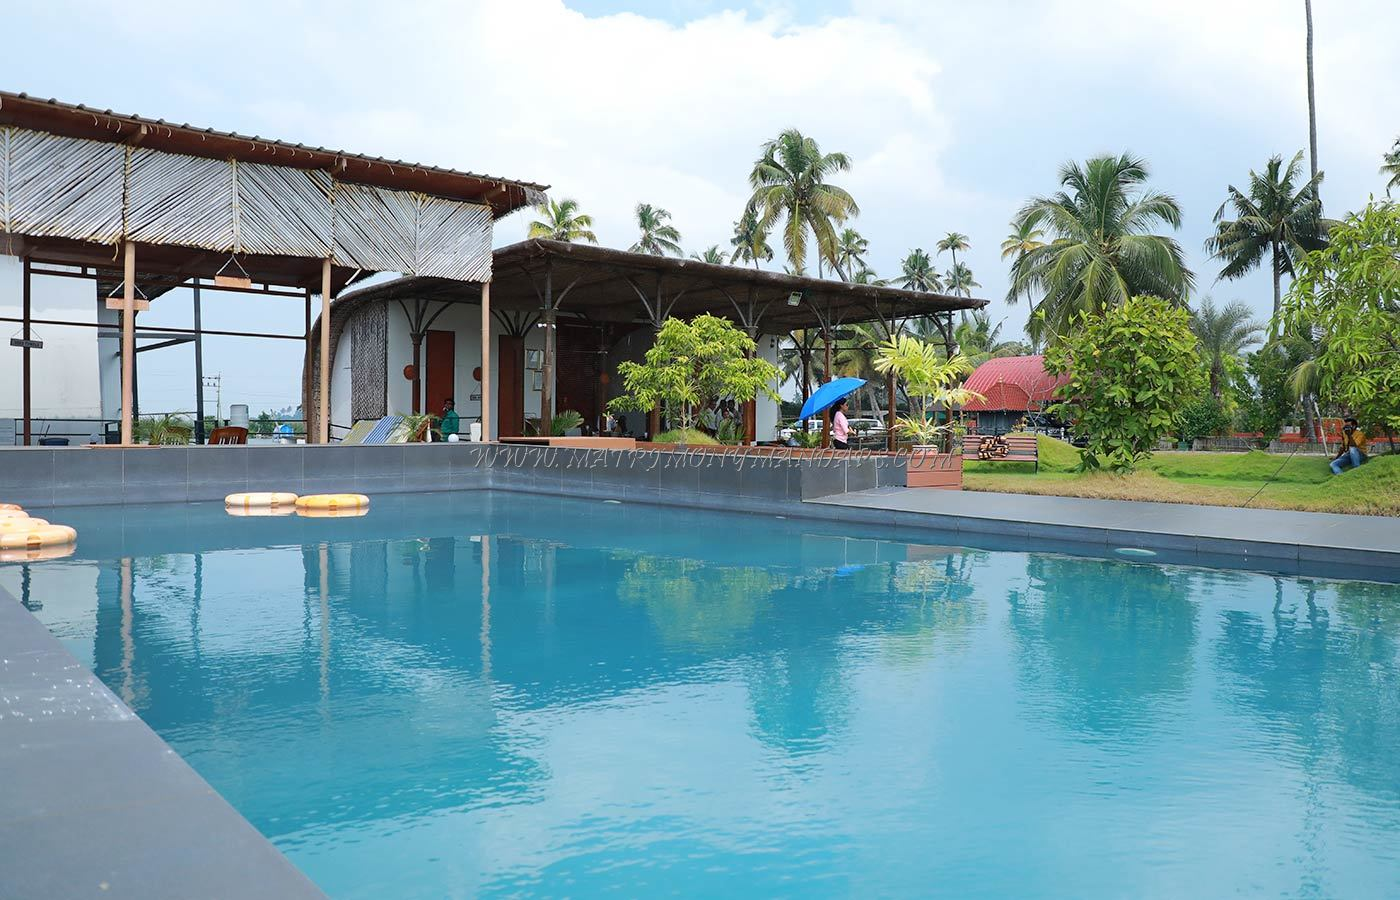 Find the availability of the Aquatic Resort (A/C) in kumbalangi, Kochi and avail special offers